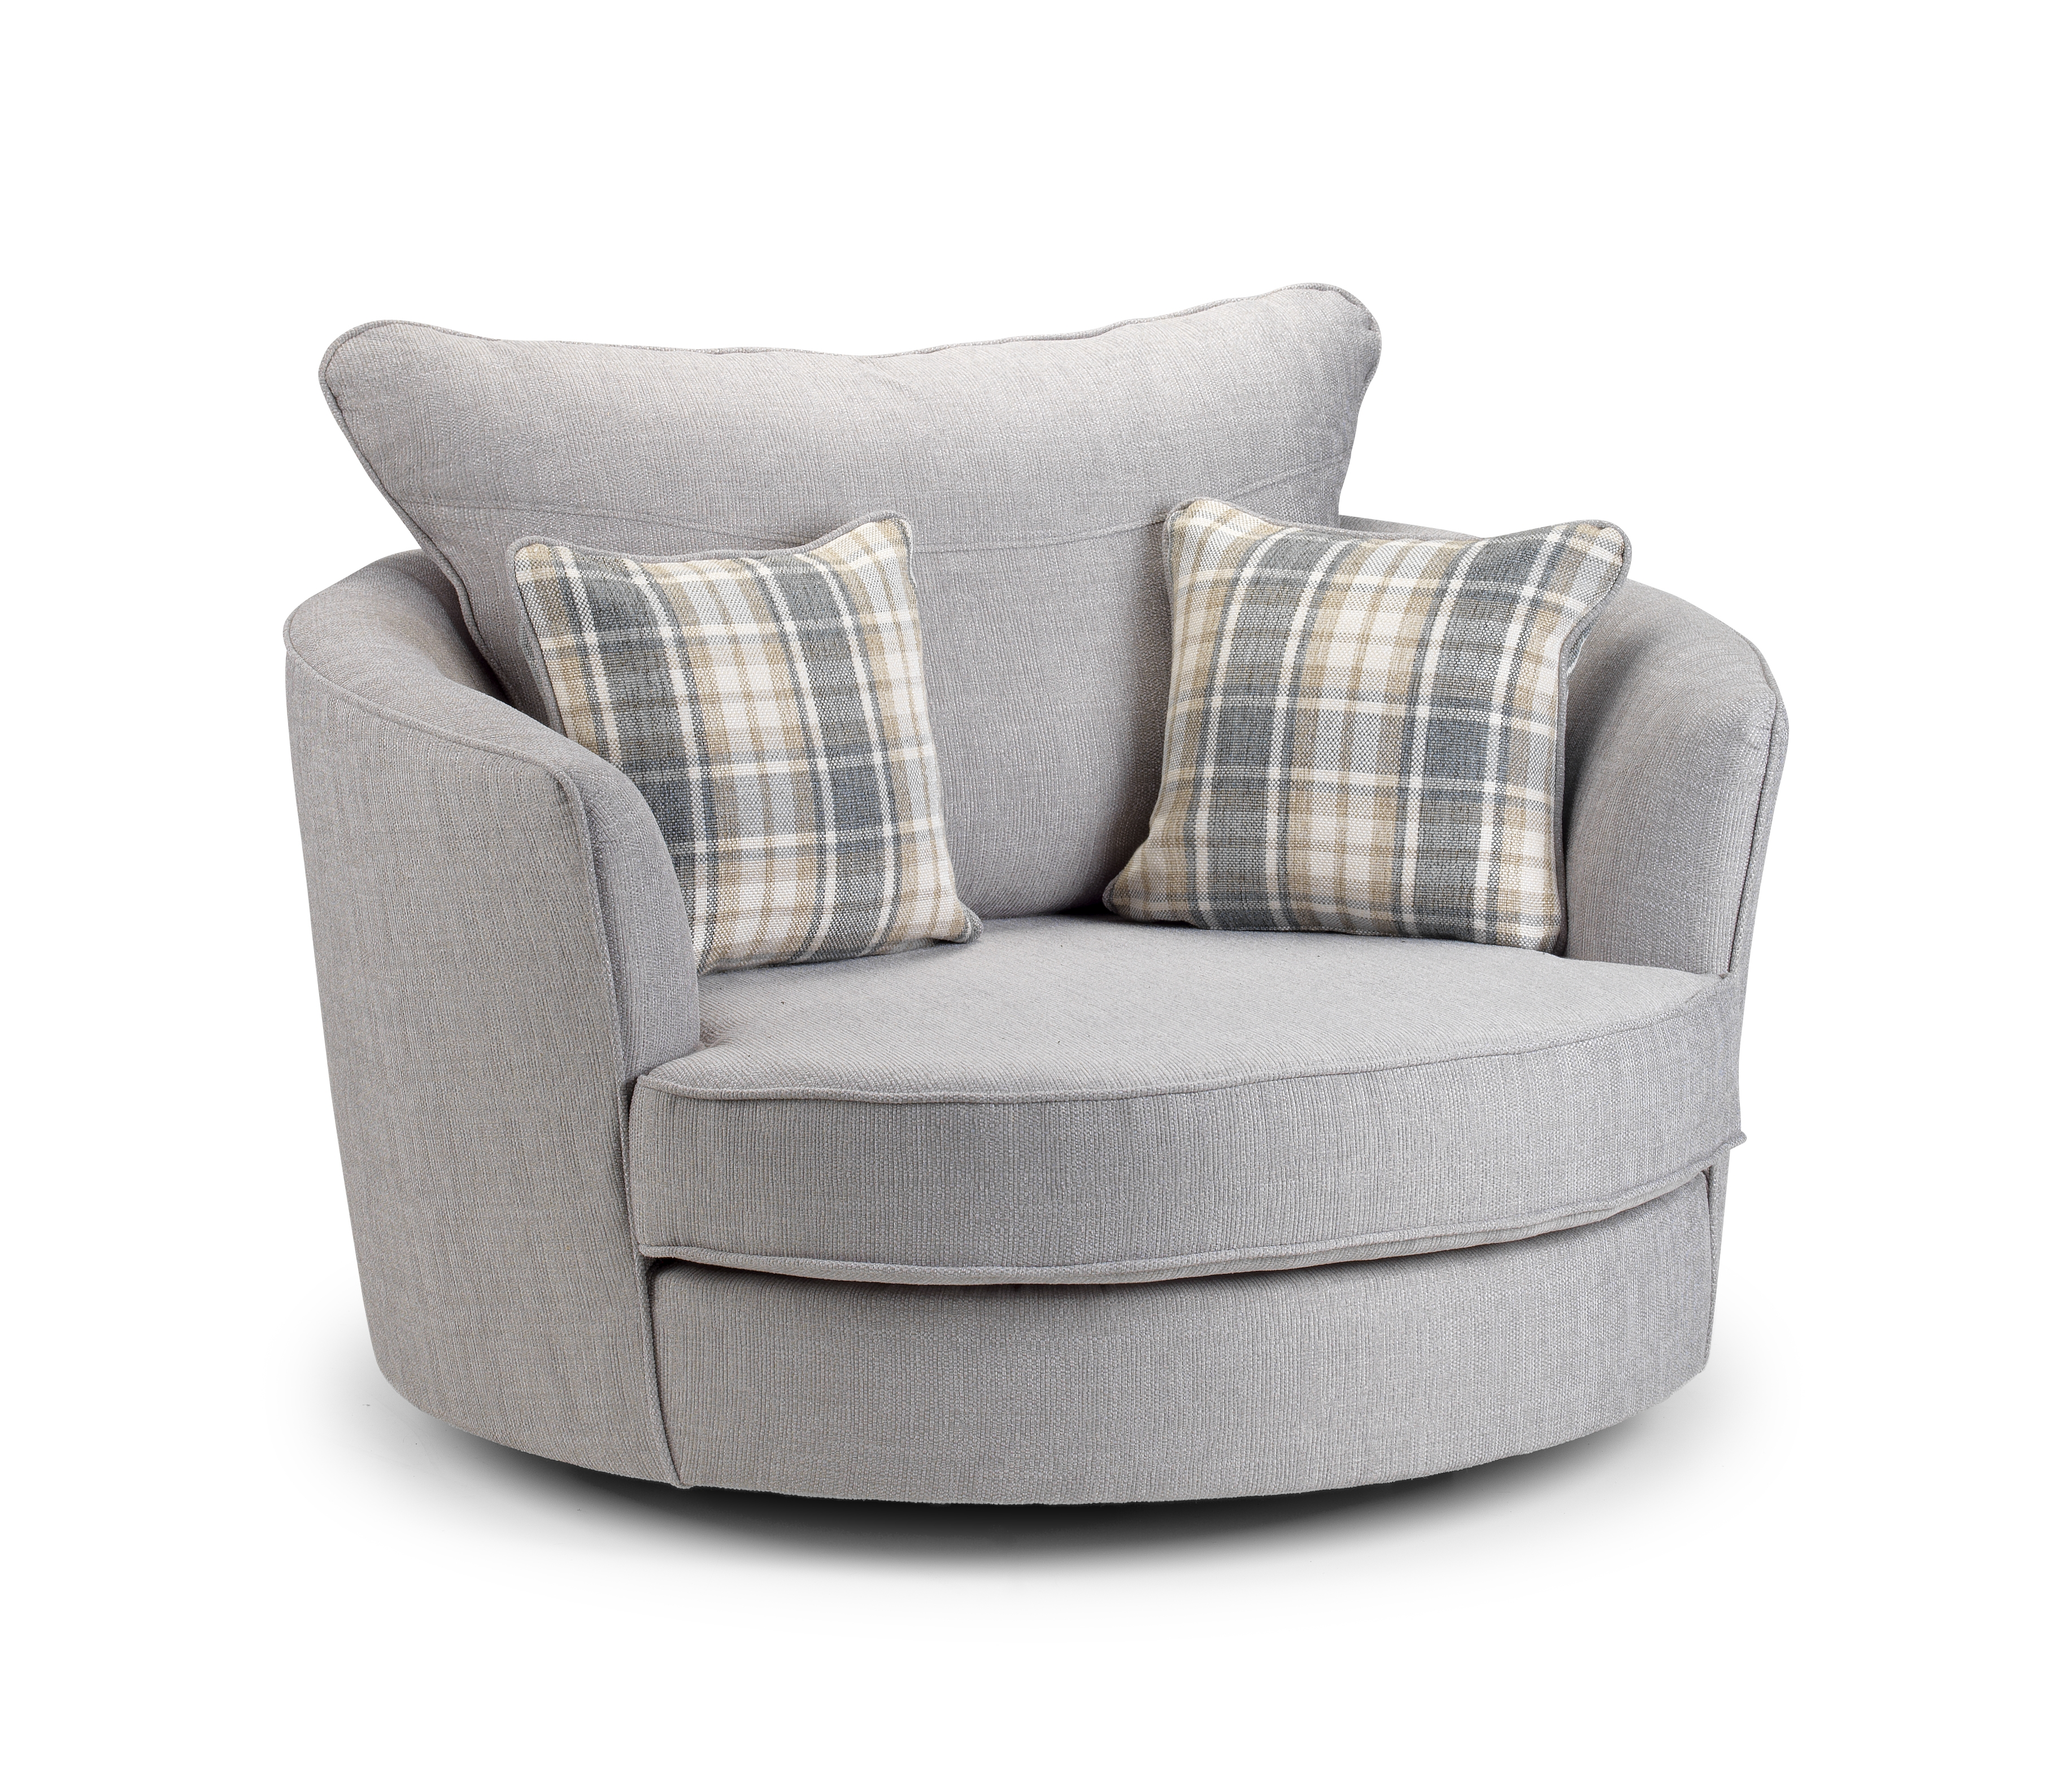 Swivel Sofa Chairs Within Round Swivel Sofa Chairs (Image 15 of 15)